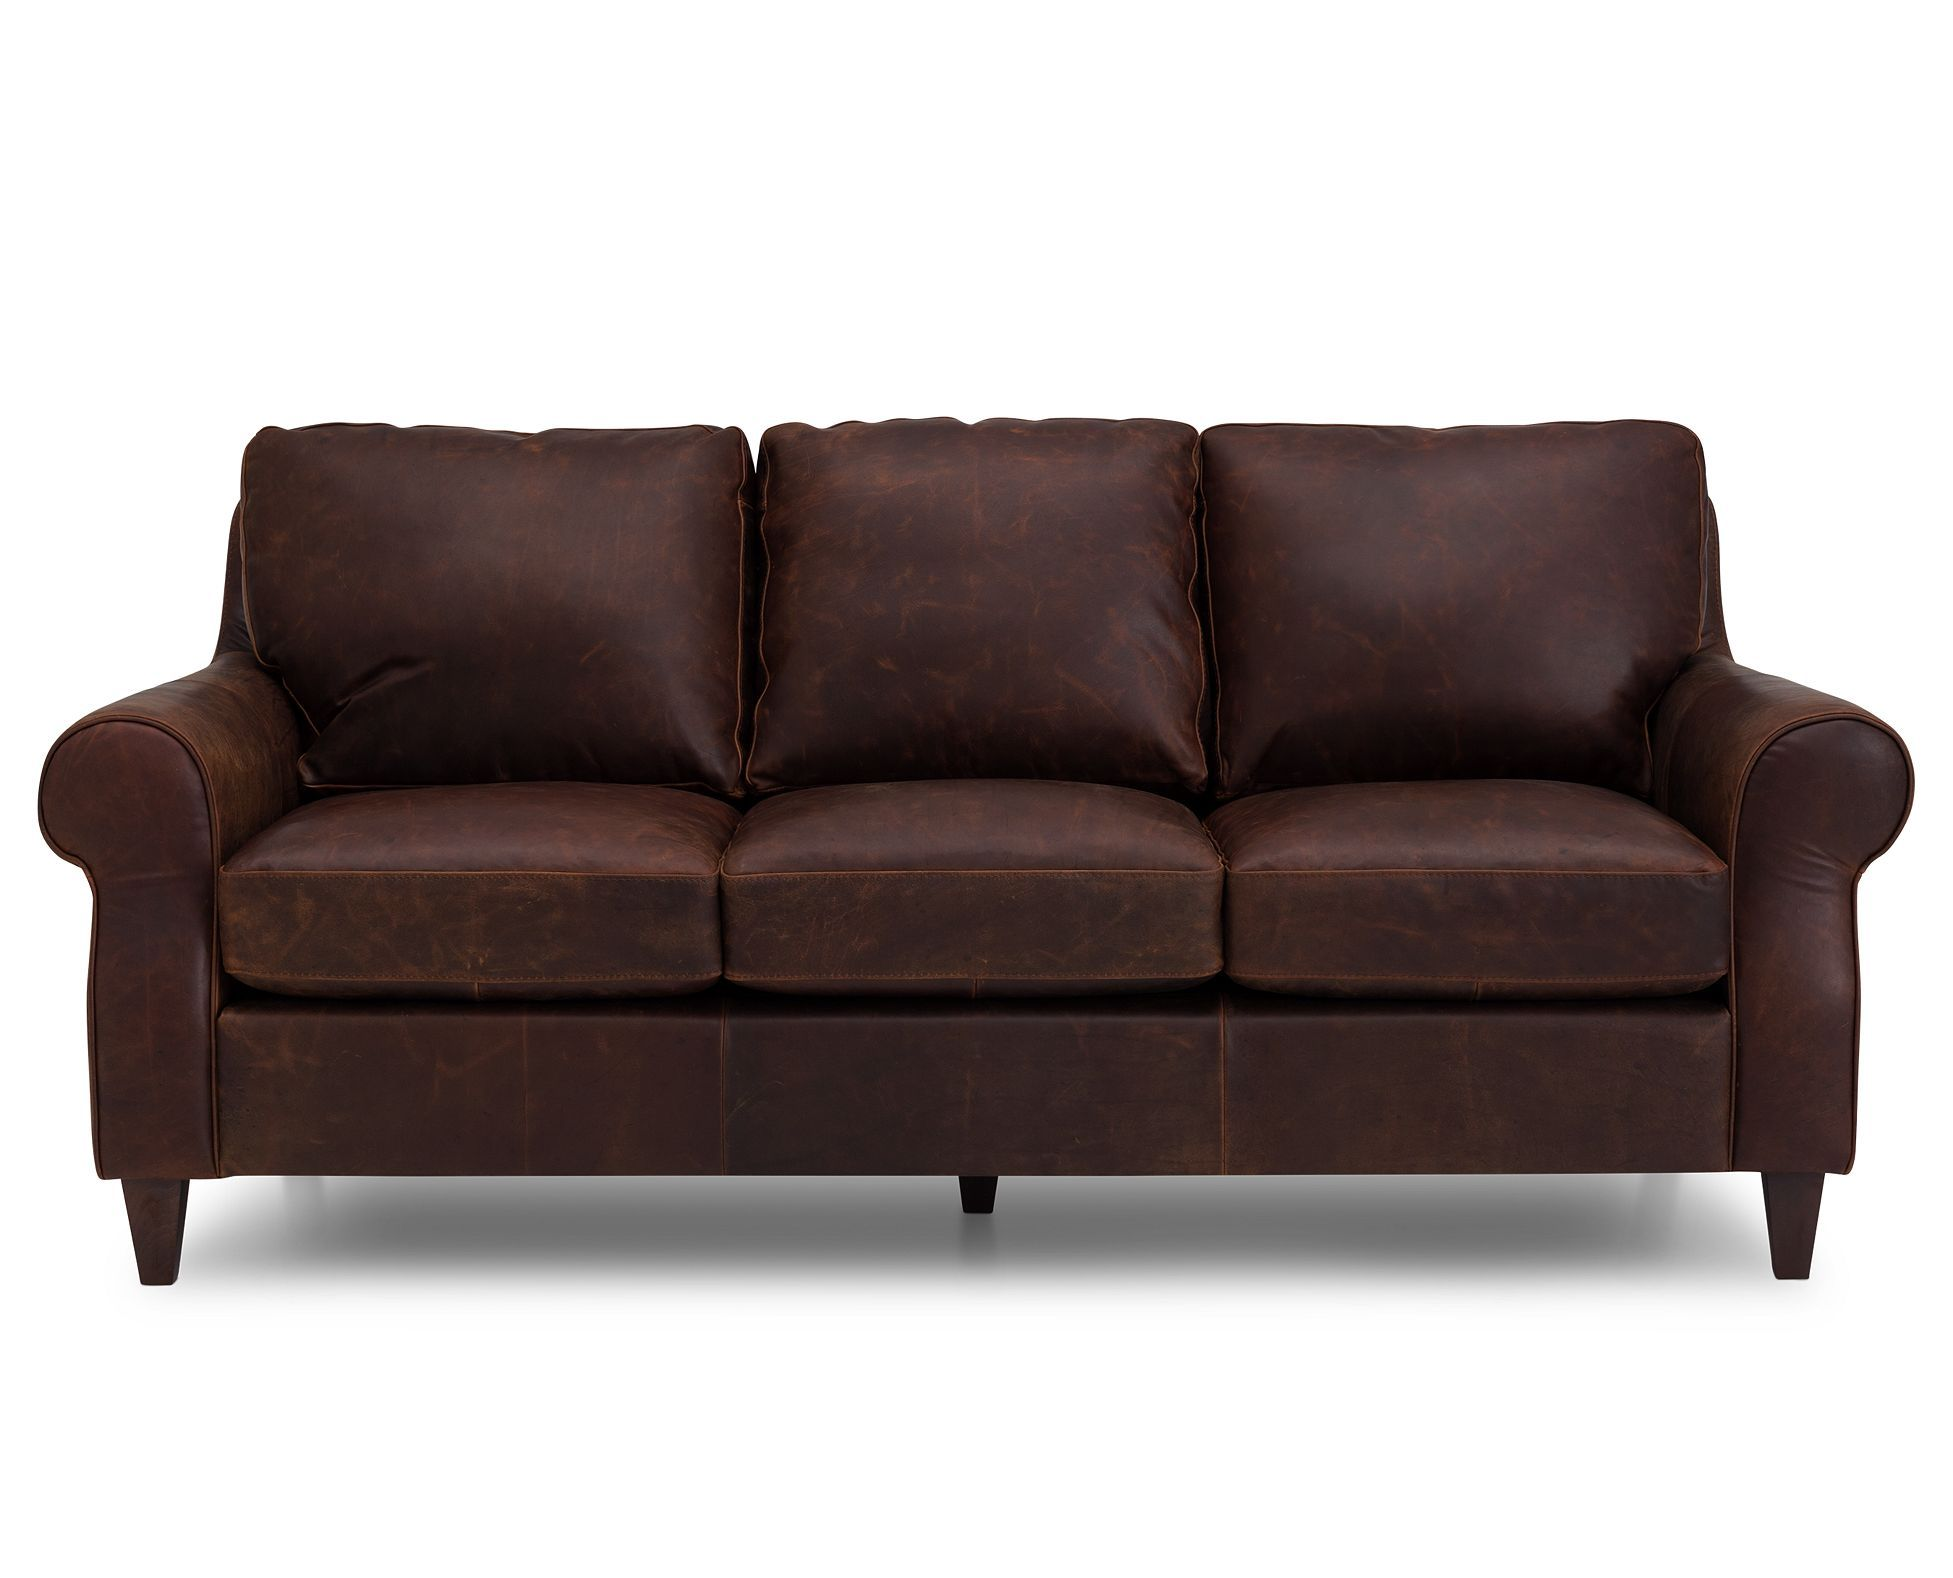 Triana Sofa In Brown Italian Full Grain Leather Buffed In Oil And Wax Is Crafted For Wear And Beauty Furniturerow Livingroomi Rowe Furniture Furniture Sofa